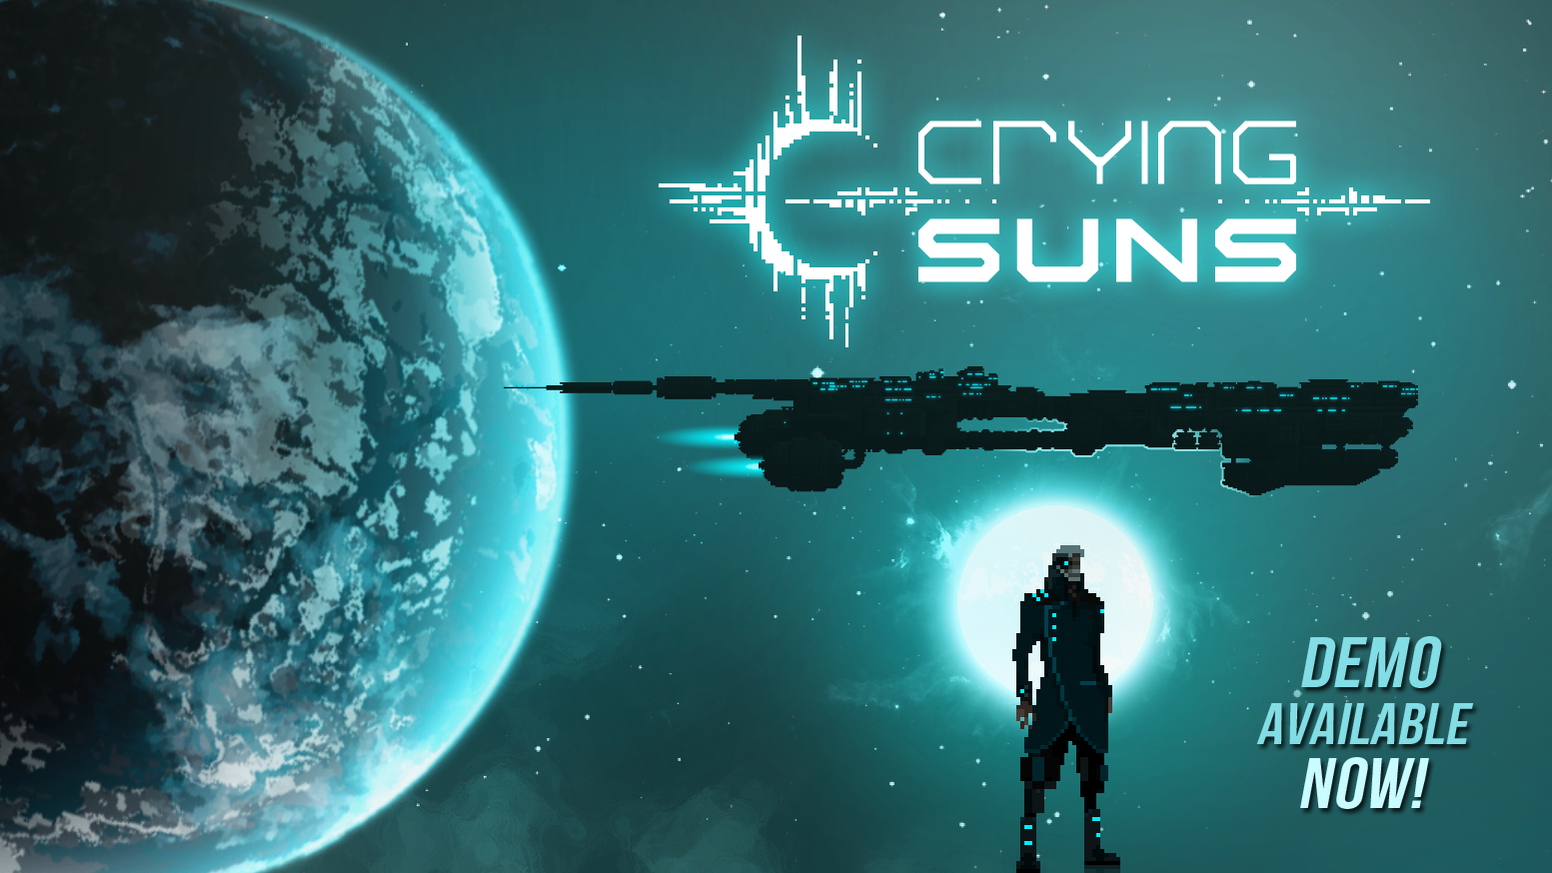 Crying Suns by Alt Shift — Kickstarter